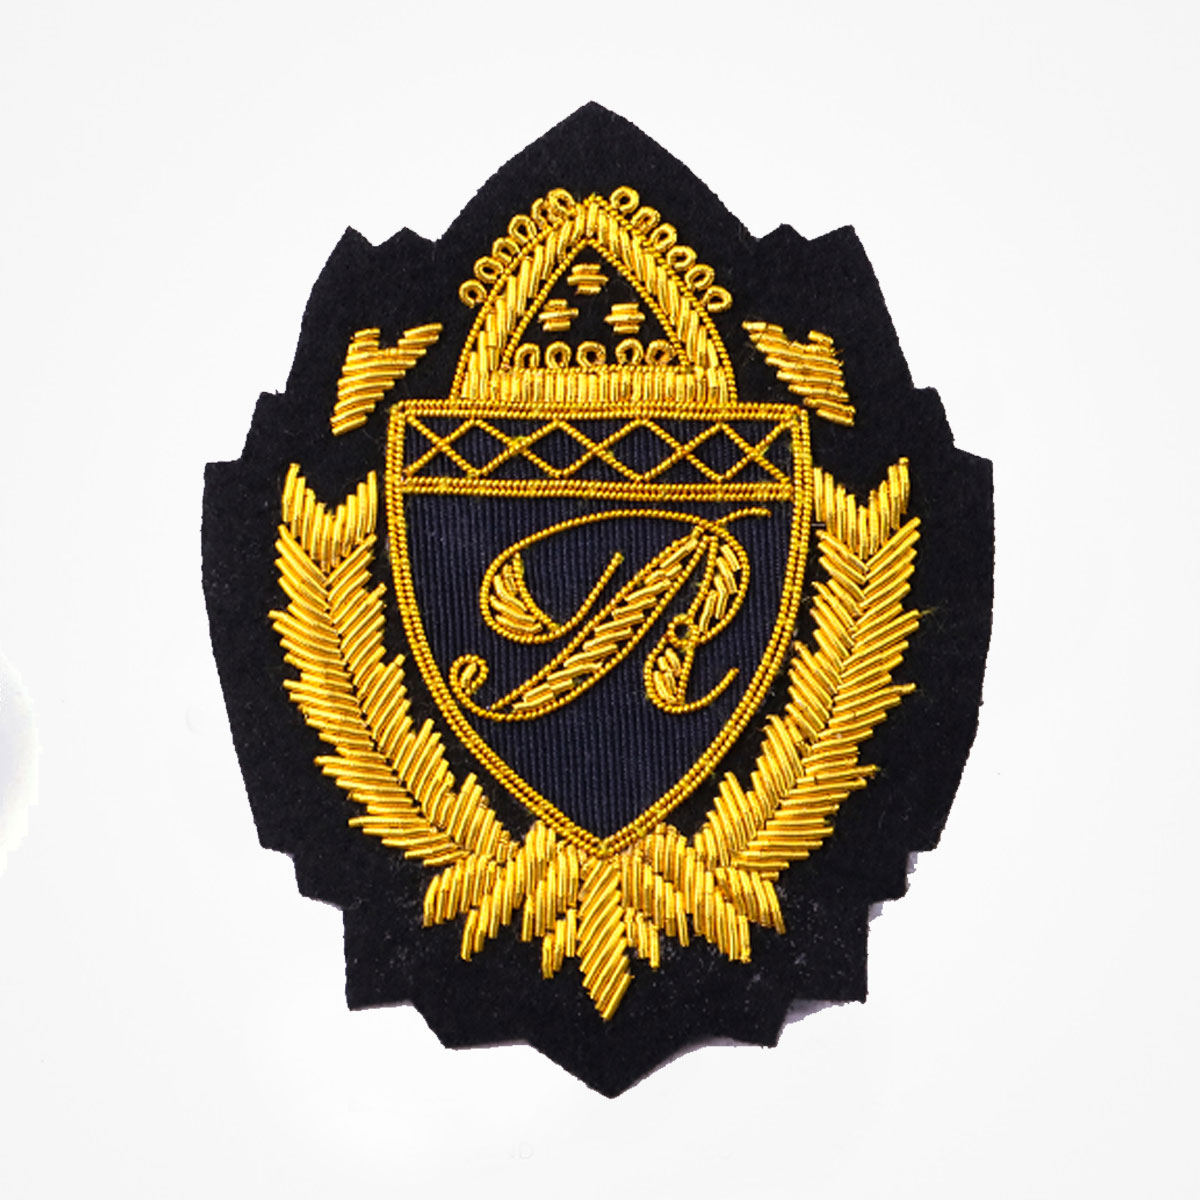 Qg - 3316 - Fashionable 3D embroidered look Made by skilled artisans Bullion wire and silk thread hand Stitched on Black color Felt Available in gold and silver colors Size = 3.5 inches sew-on backing: Perfect for caps, sports jacket, leather jackets, blazer coat, Blazer Pocket, shirts uniforms, Accessories and many More Pin backing: easy to removable 5